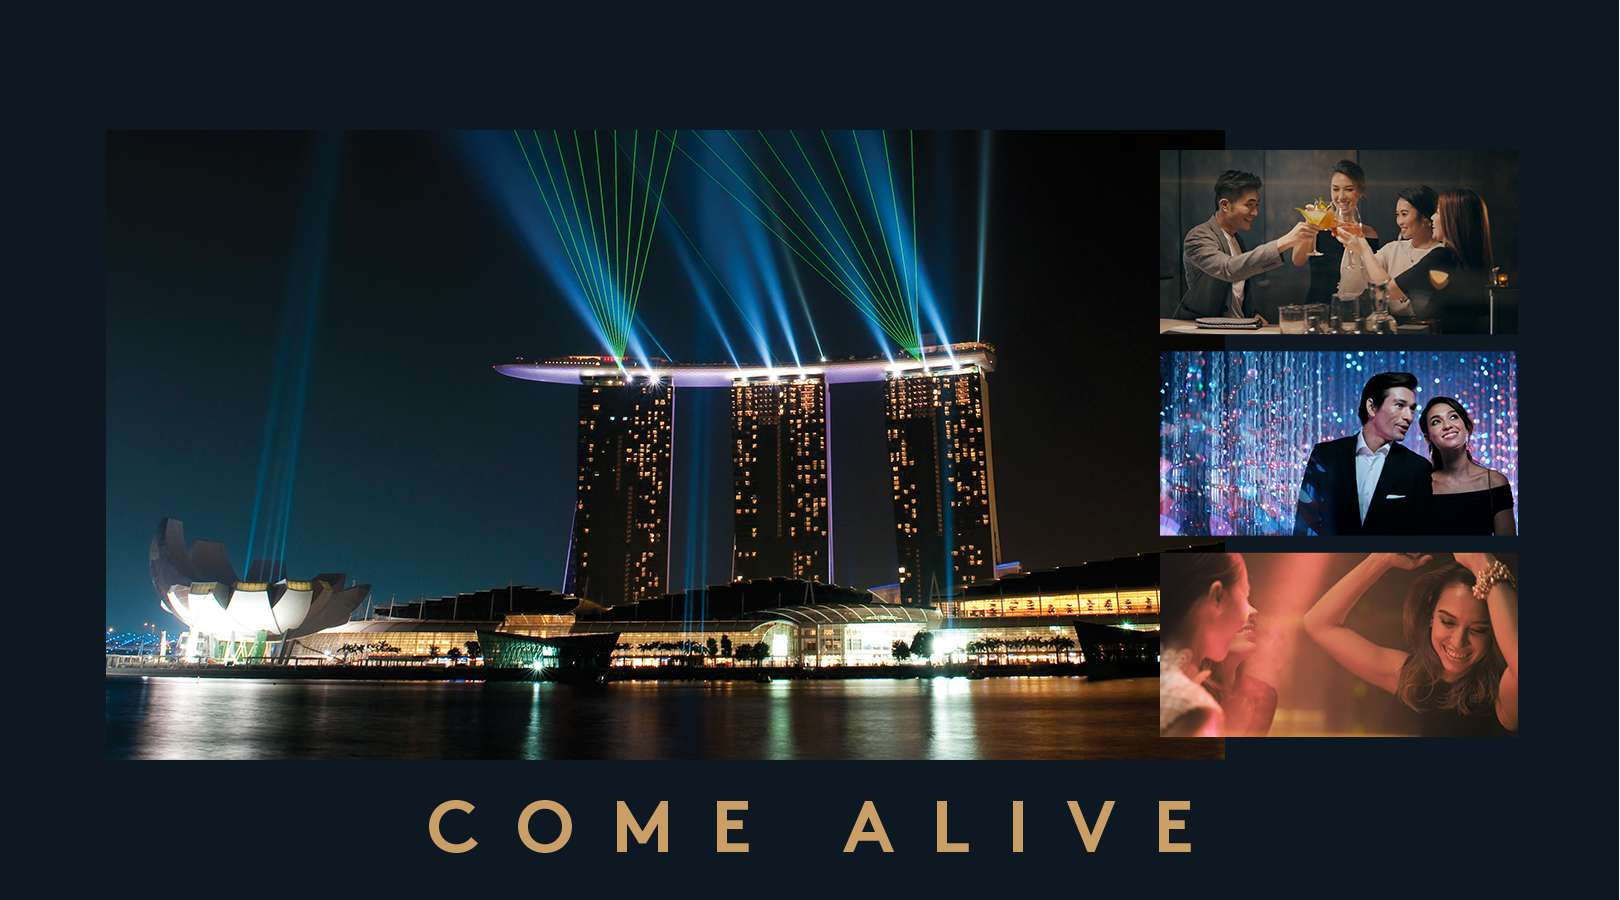 Marina Bay Sands, Luxury 5 Star Hotel and Integrated Resort in Singapore